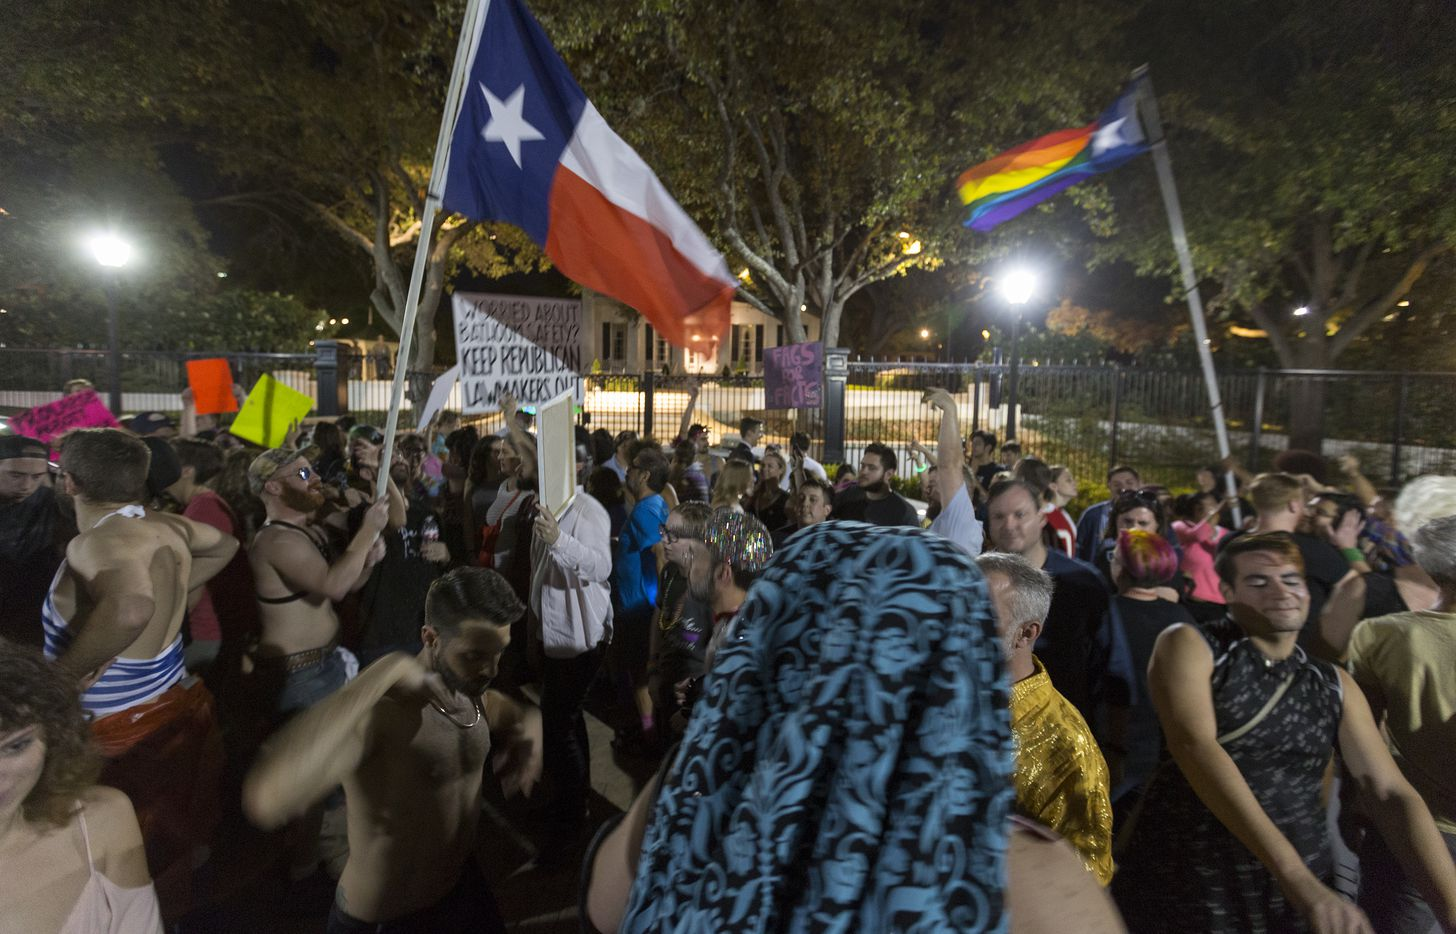 Supporters of the LGBTQ community gather for a dance party in front of the Governor's Mansion in Austin on Thursday, Feb. 23, 2017.